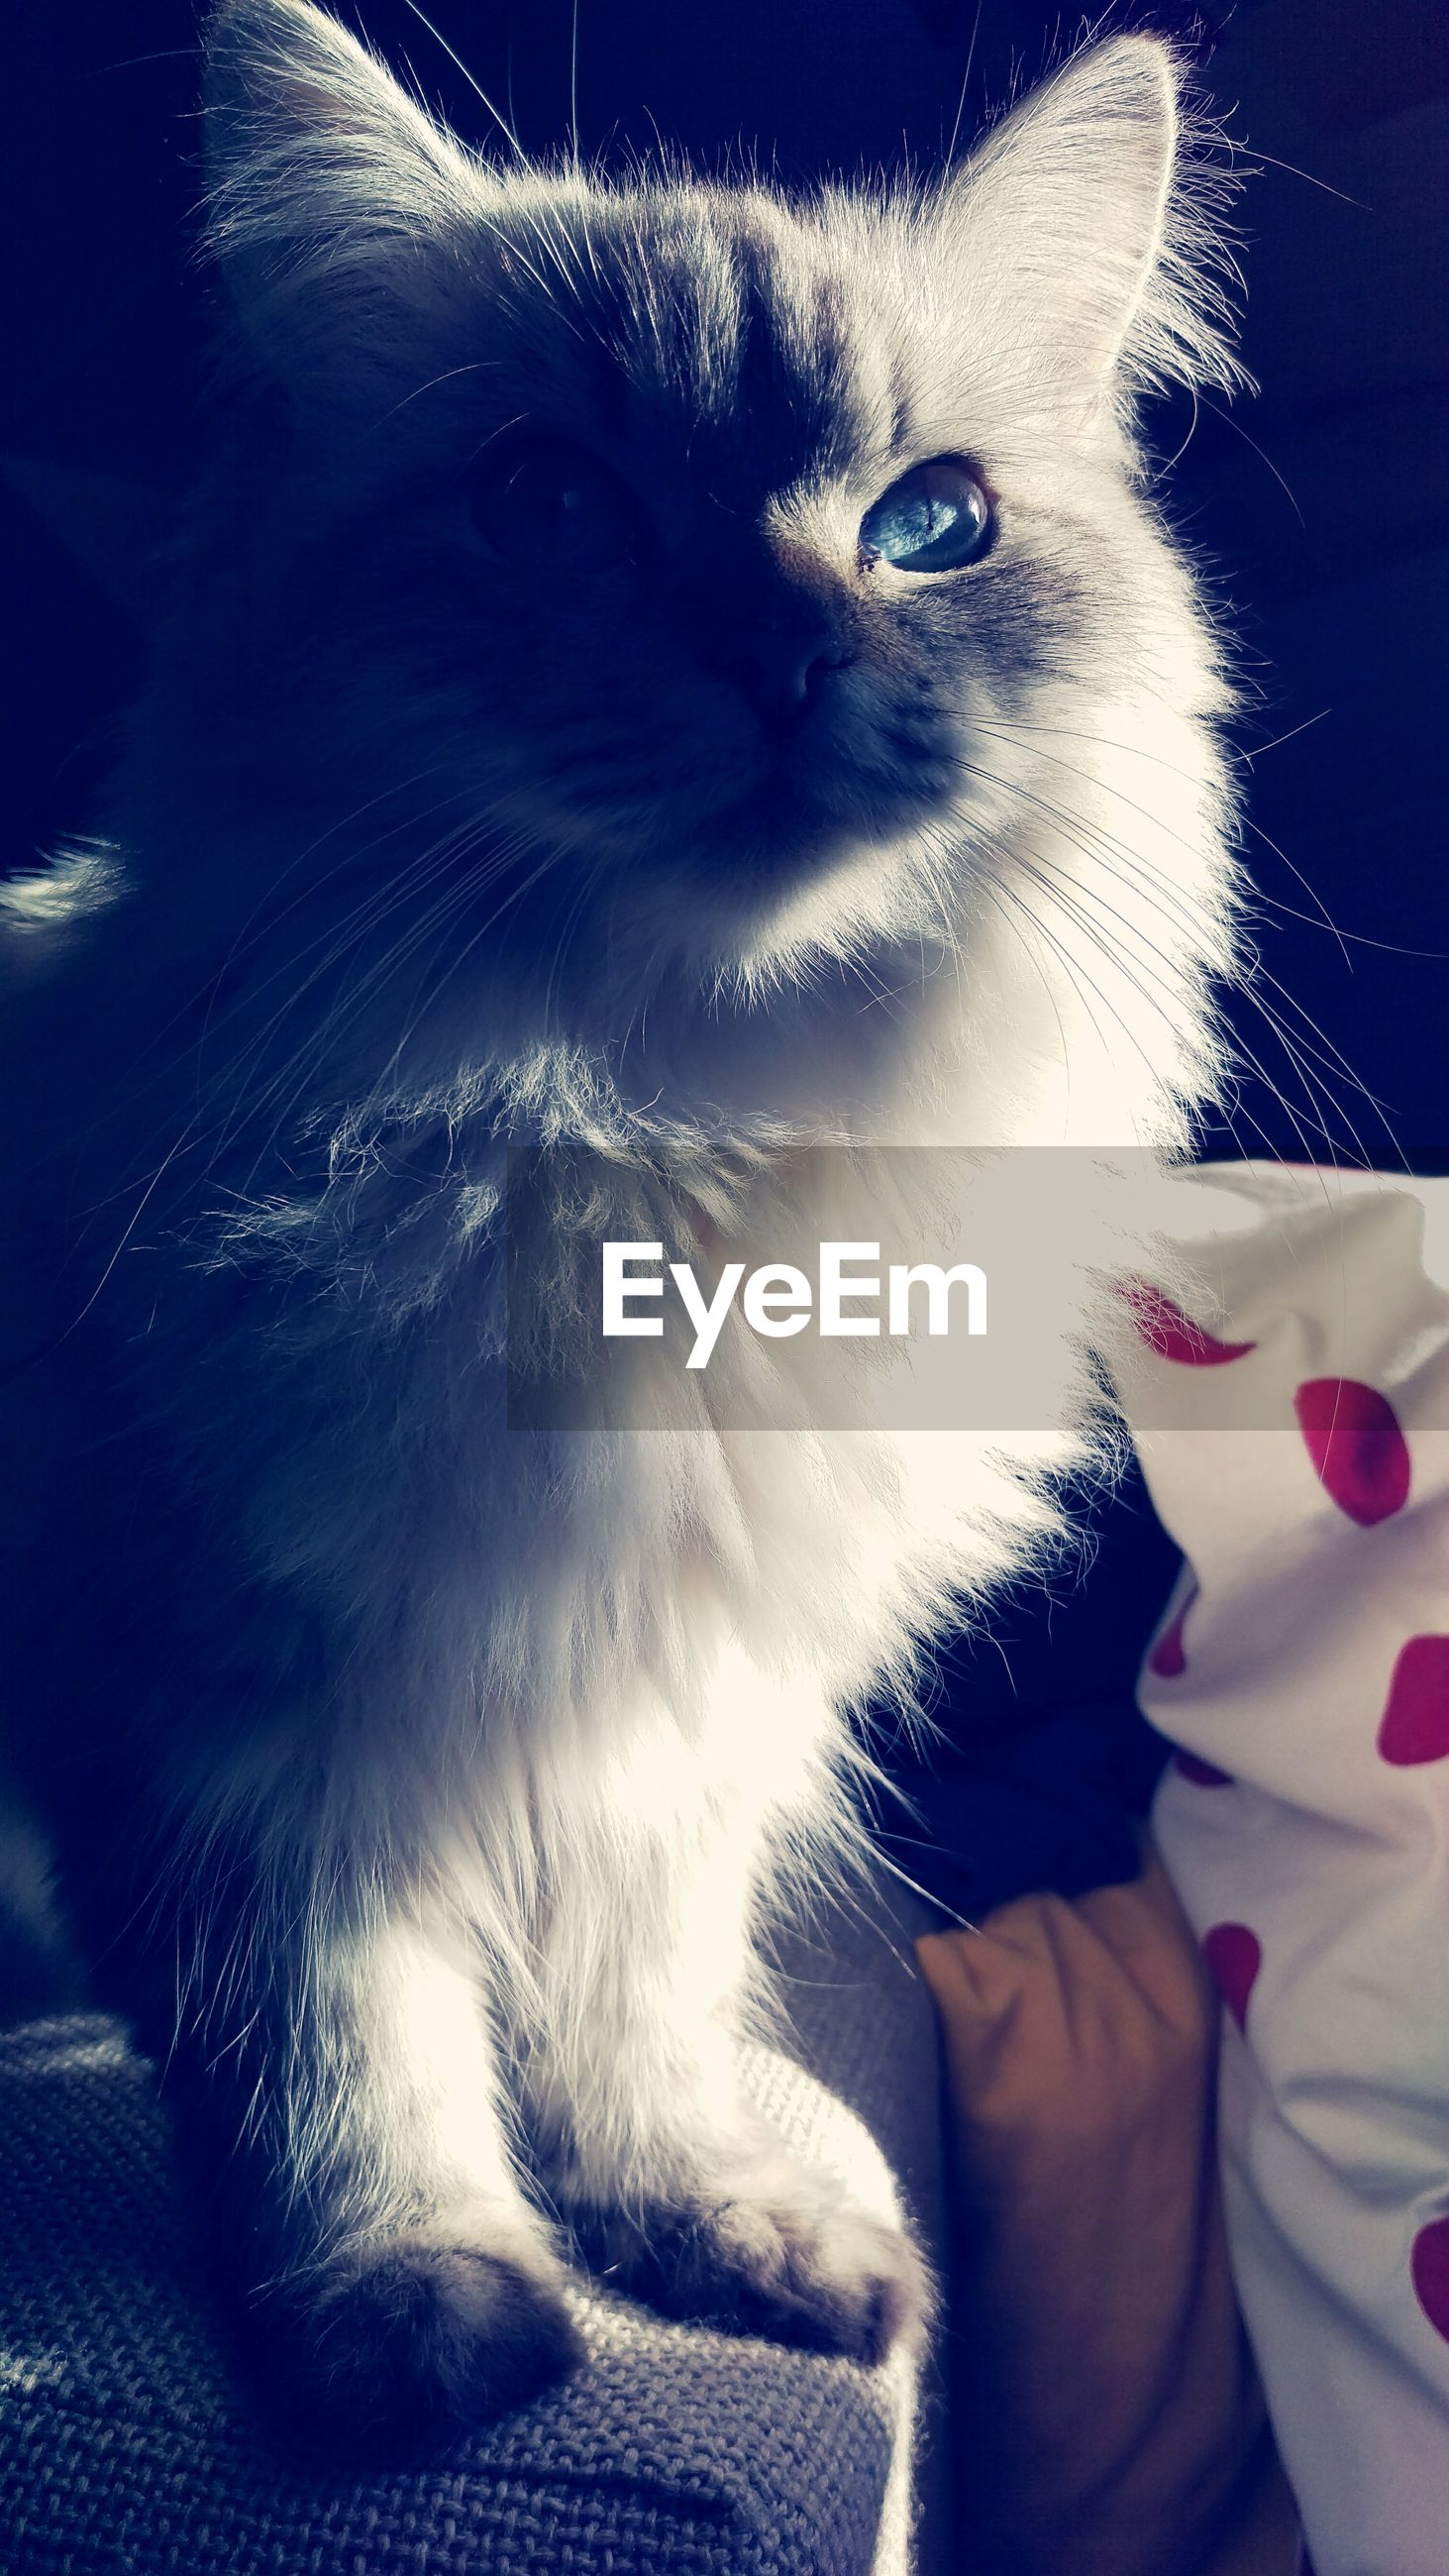 pets, domestic animals, one animal, indoors, animal themes, mammal, domestic cat, lifestyles, part of, personal perspective, dog, cat, pet owner, leisure activity, close-up, person, unrecognizable person